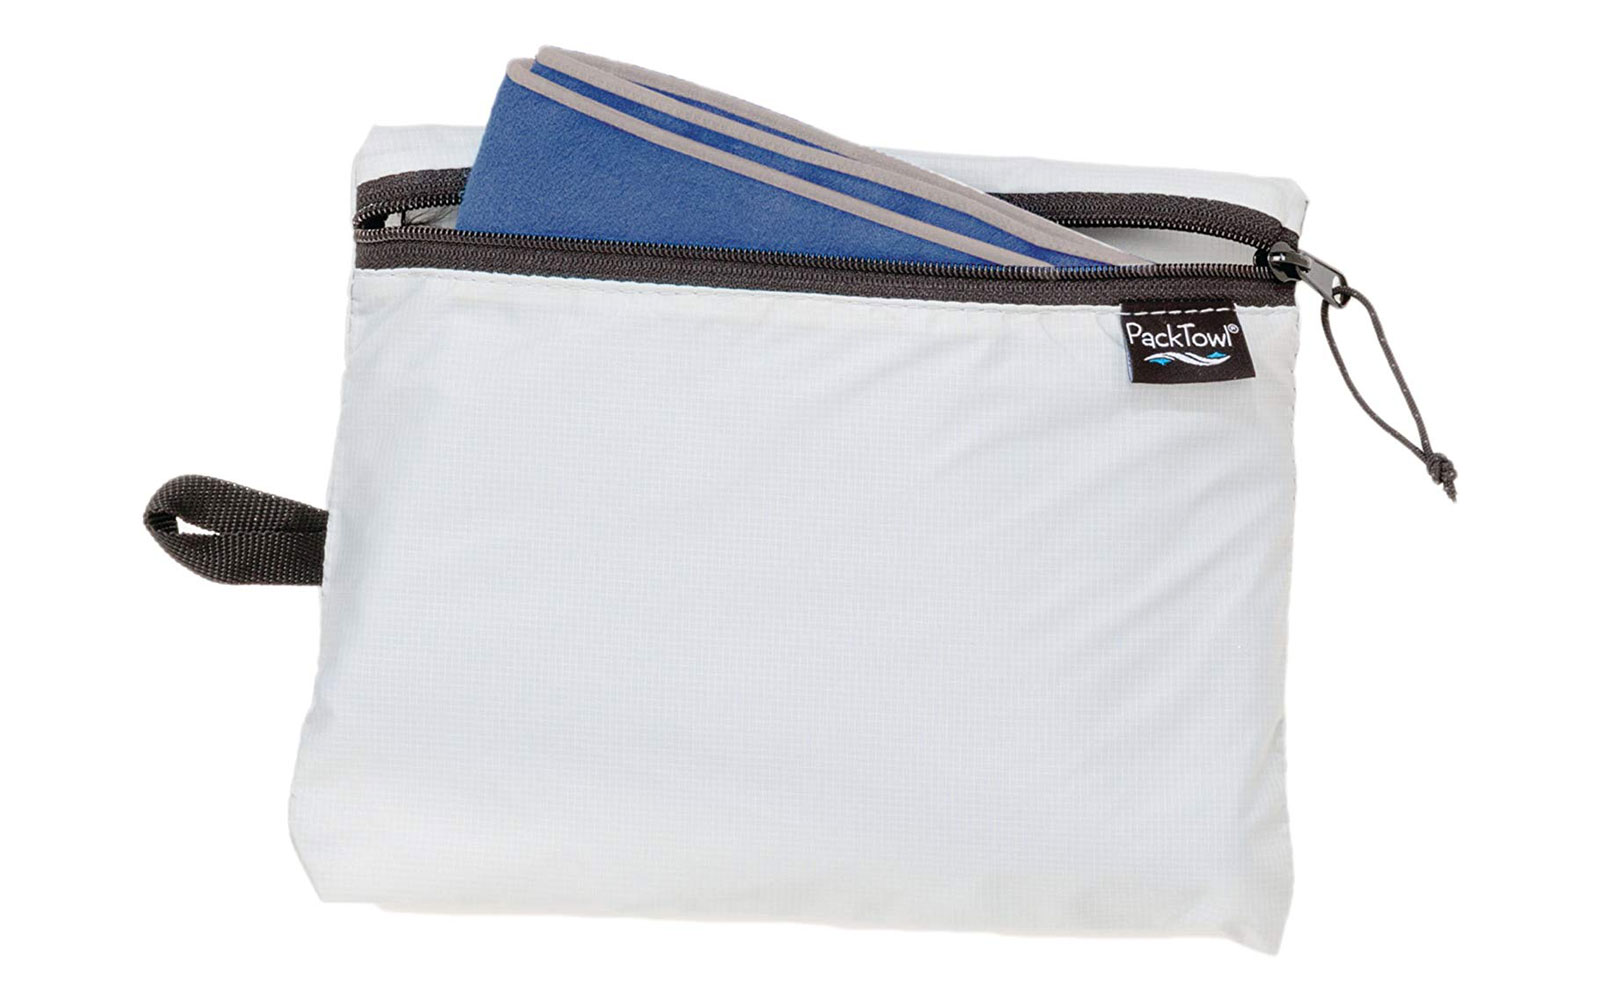 This Compact, quick-drying towel is a must-have for adventure travel